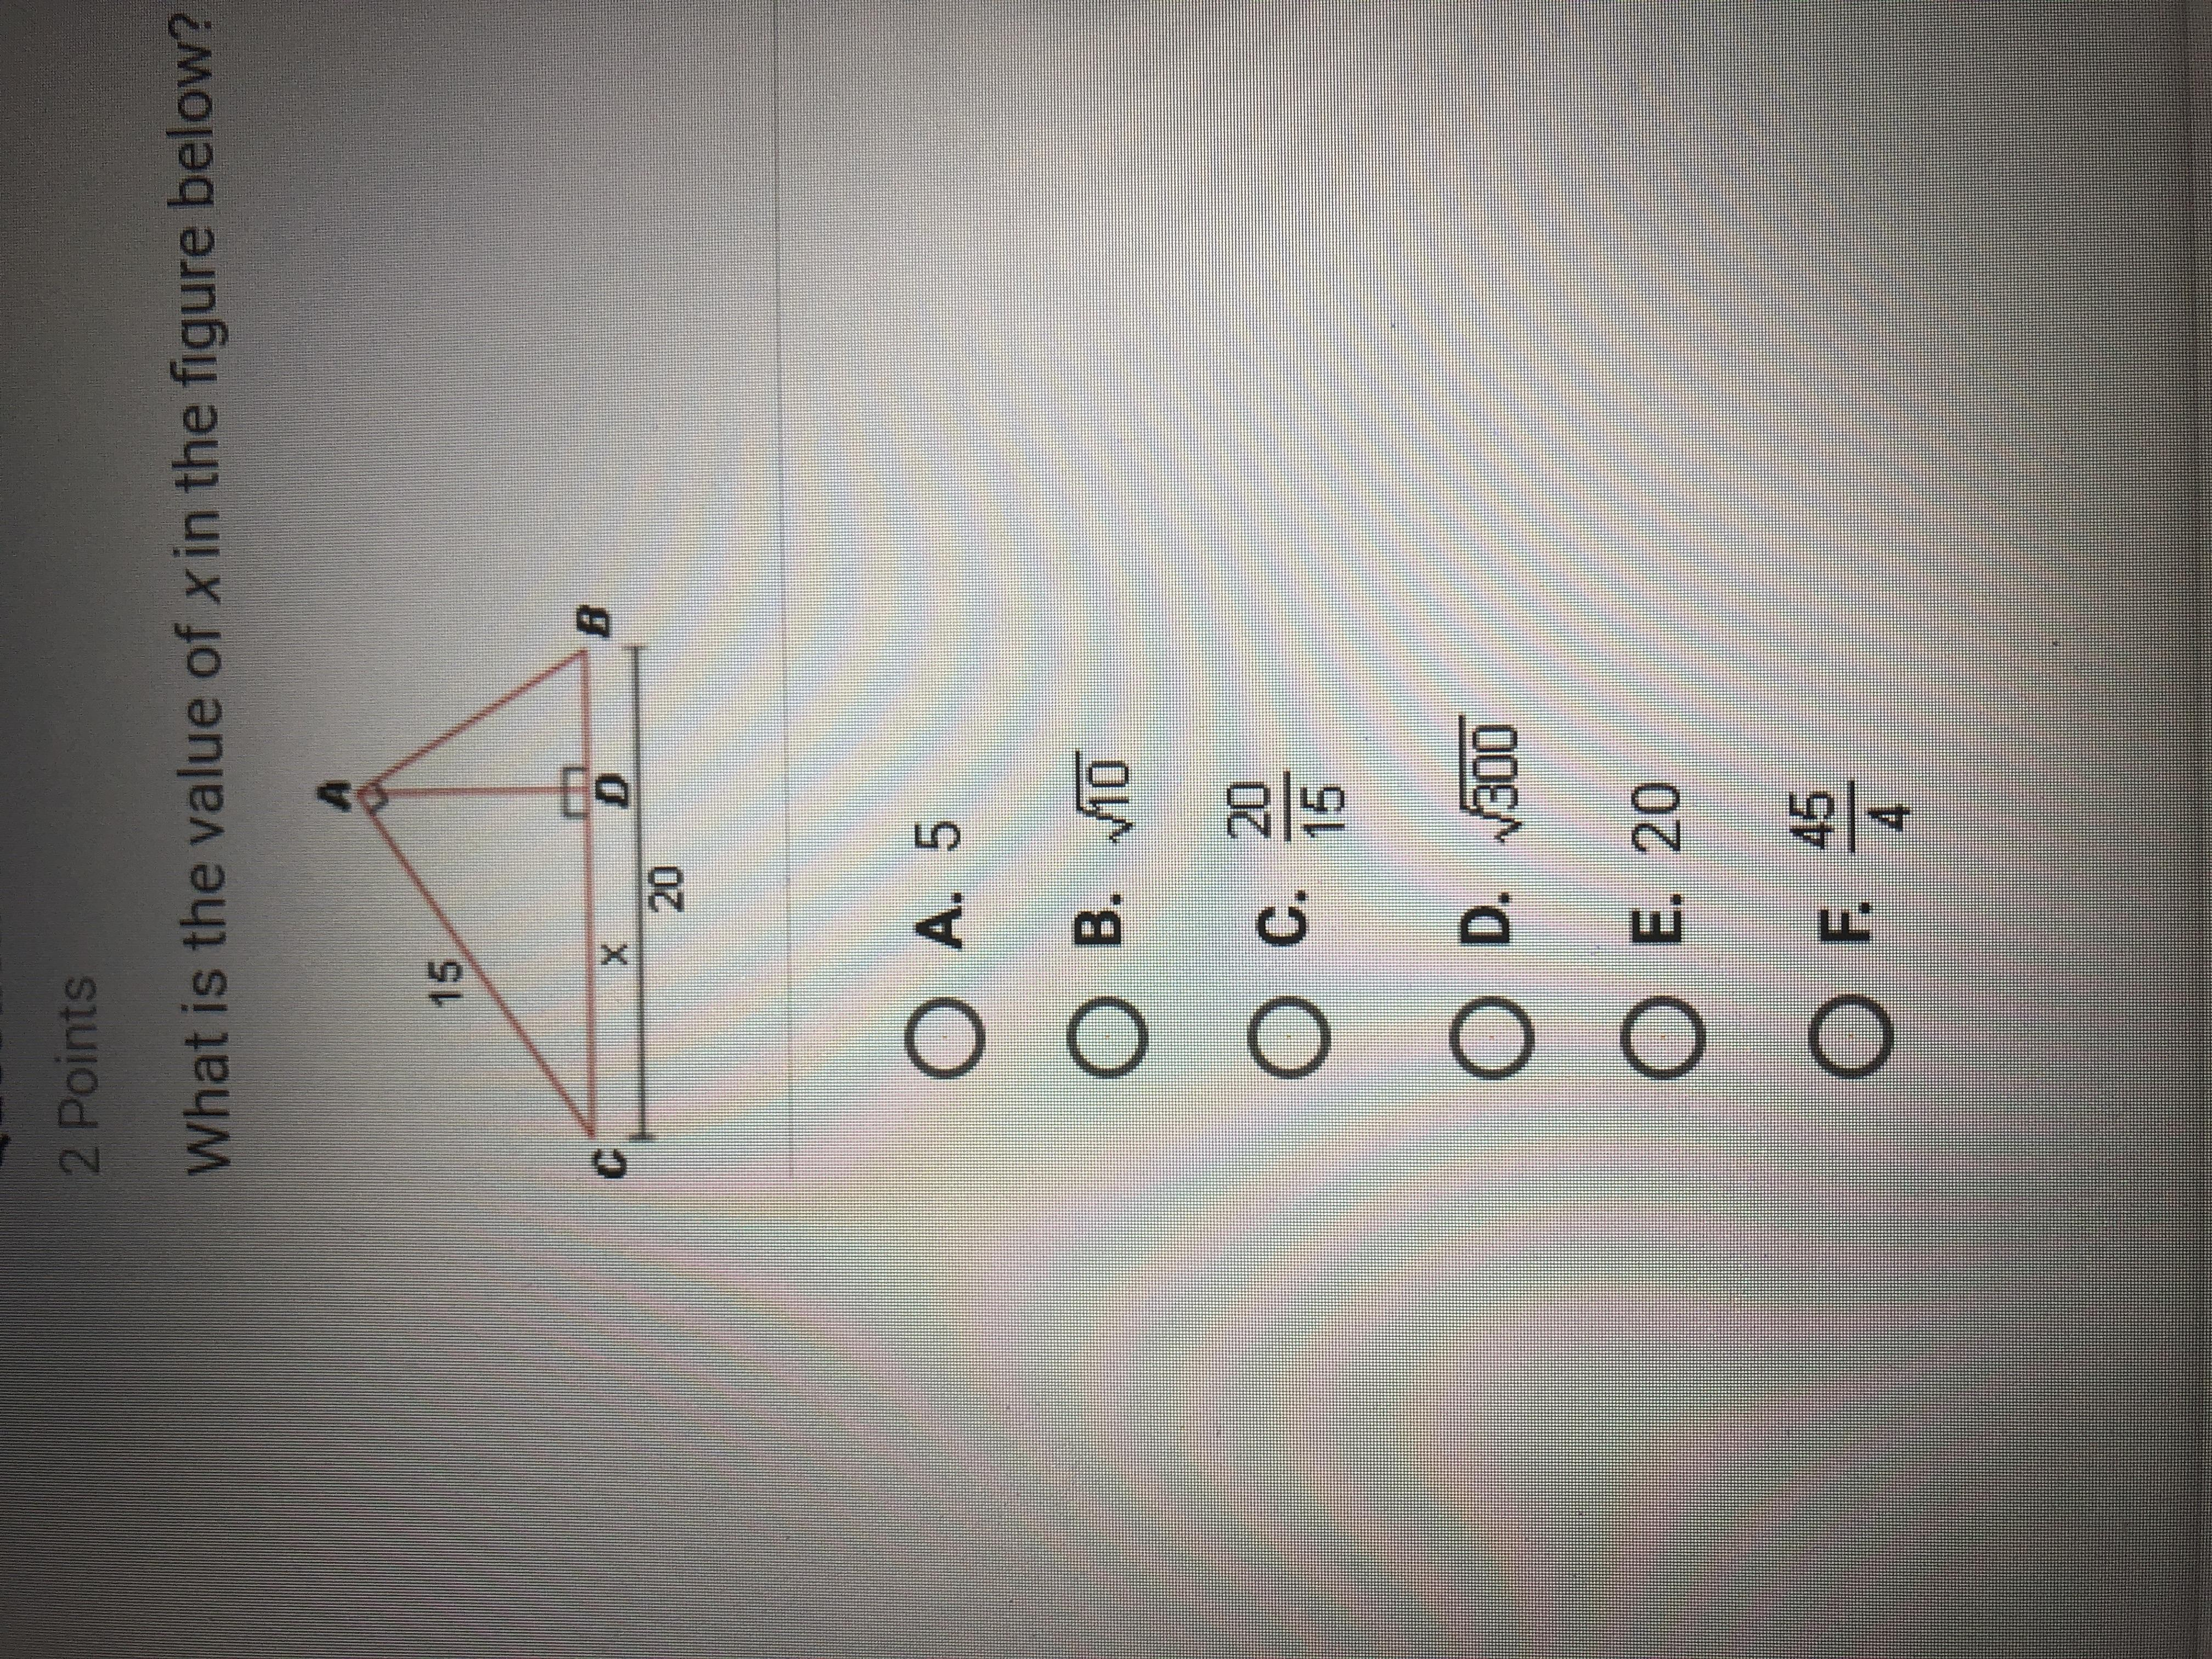 What Is The Value Of X In The Diagram Below